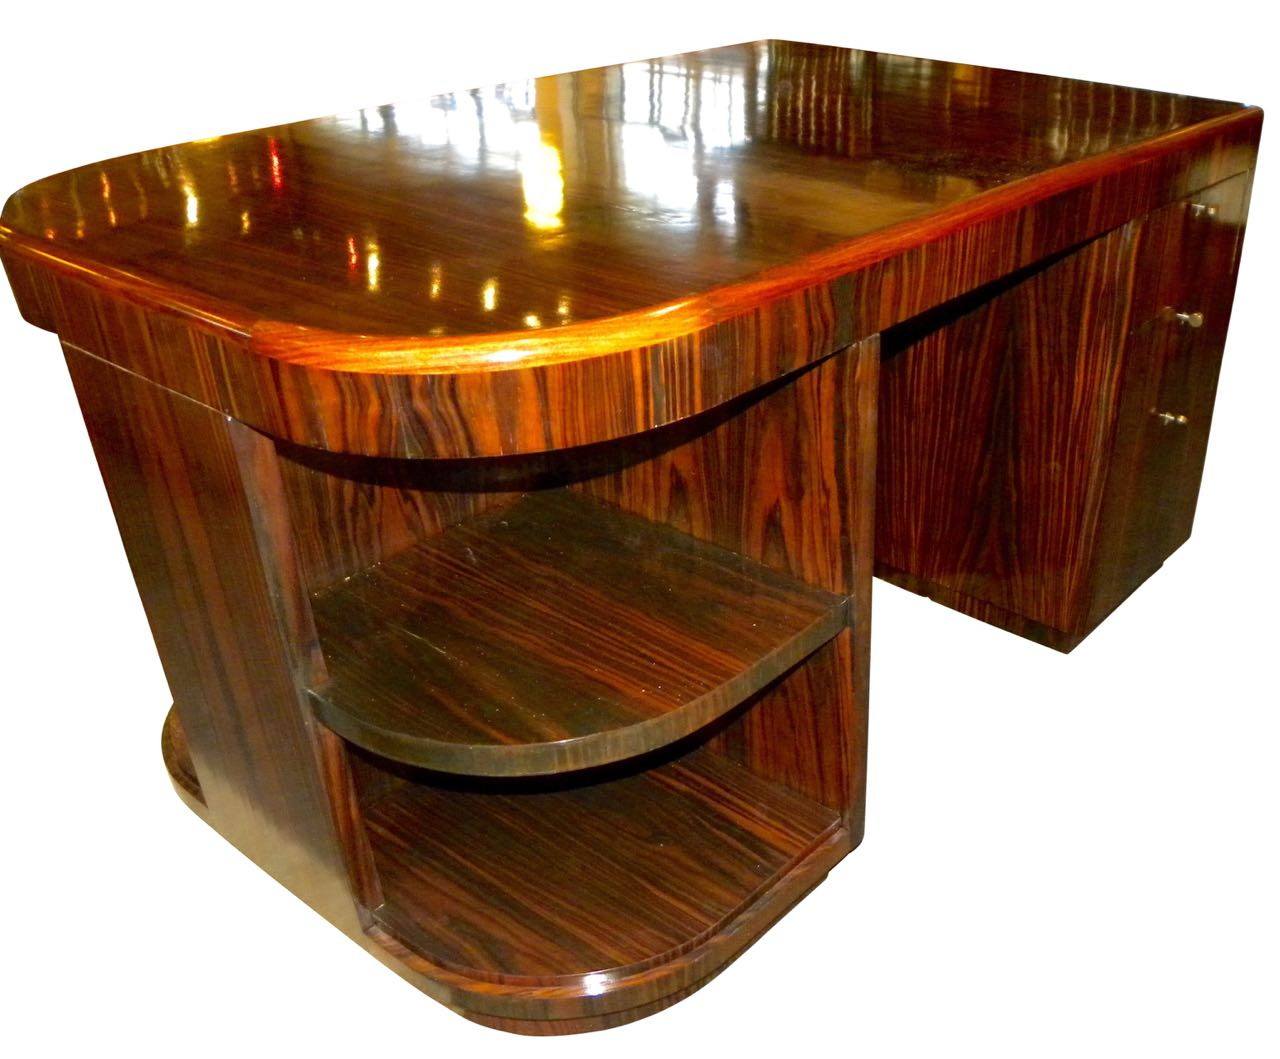 Art Deco Furniture Sold Desks And Cabinets Art Deco